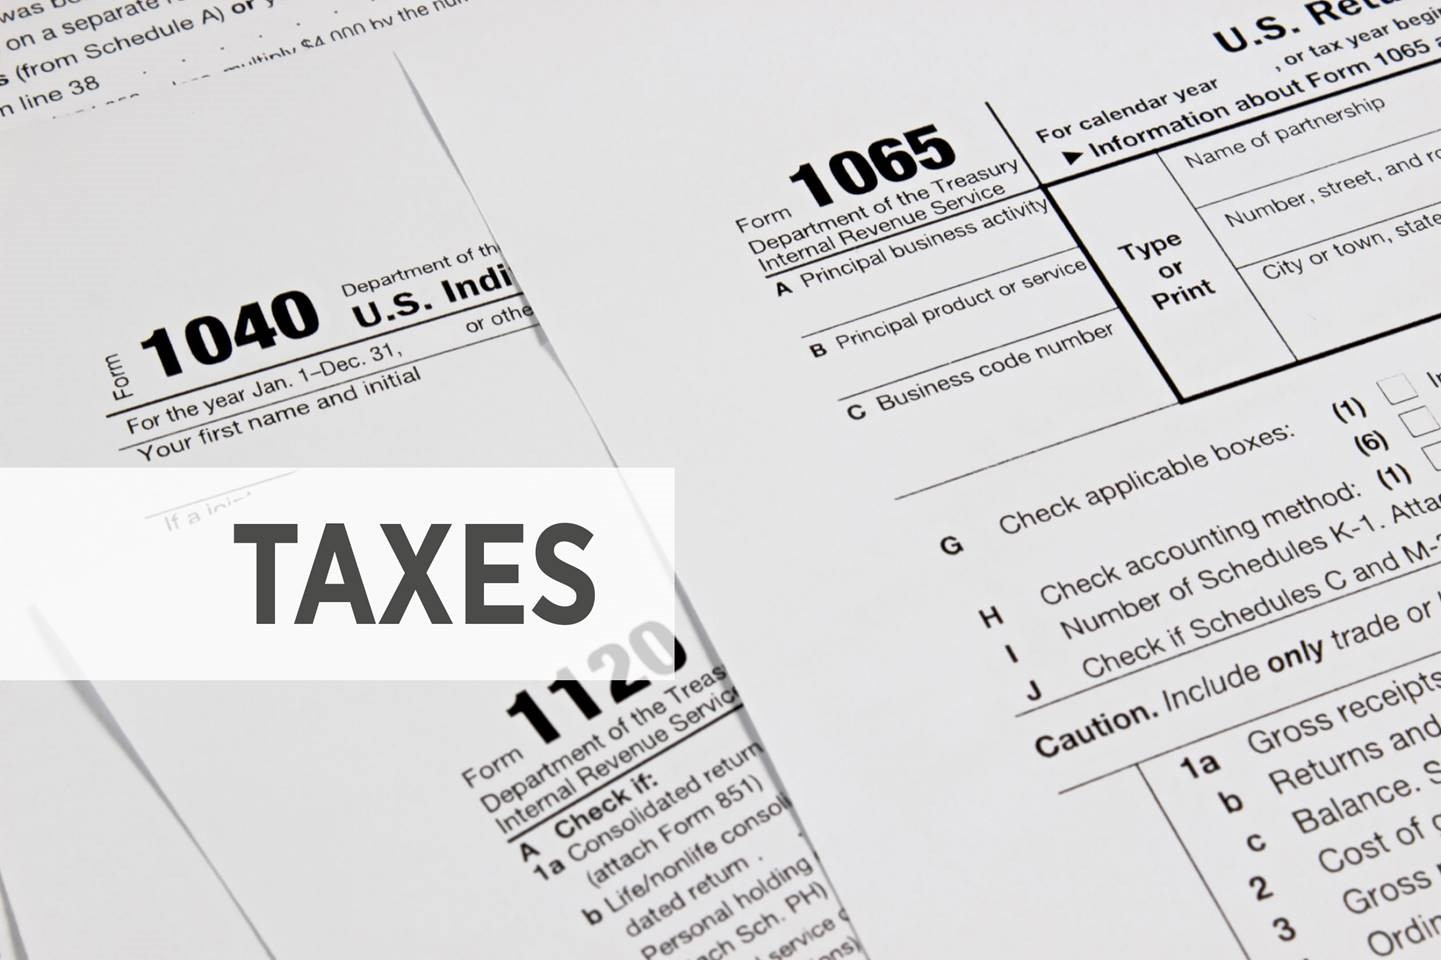 TaxSpeaker 1040 Tax In Depth, January 5-6, Webinar